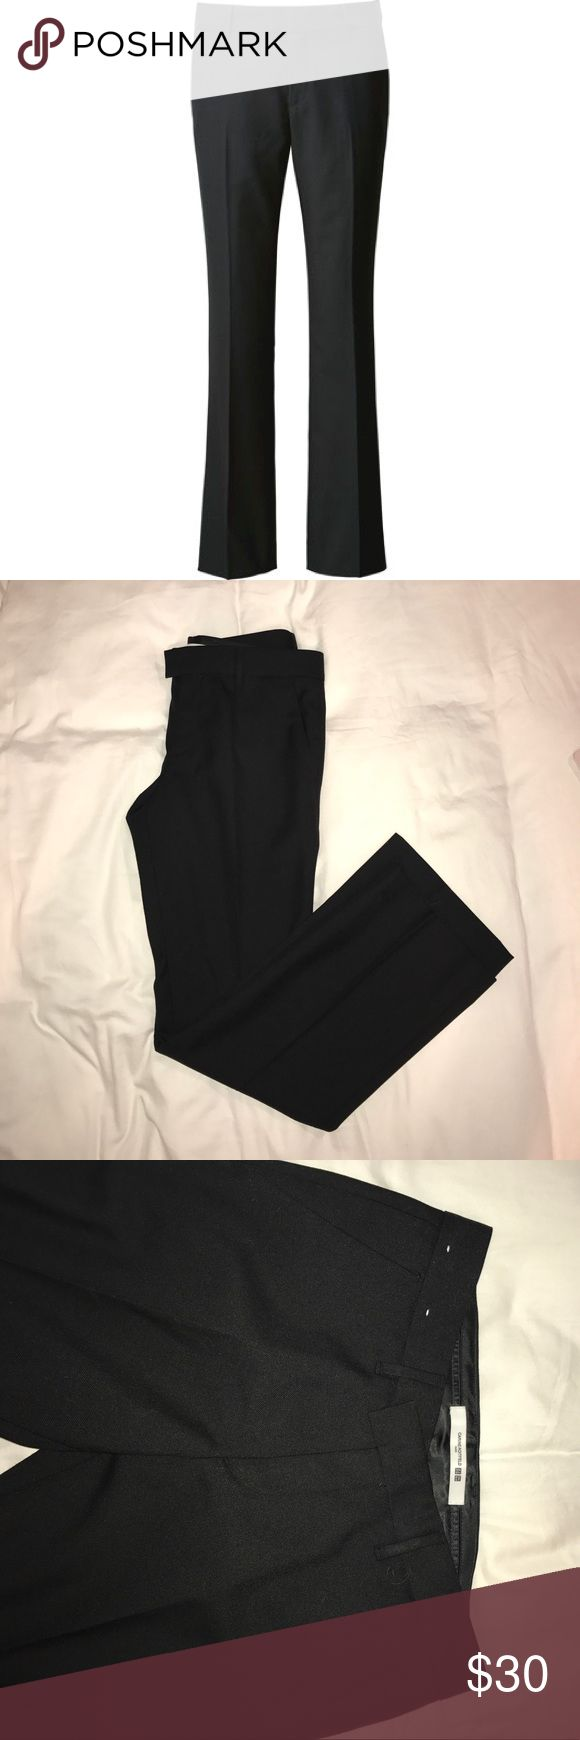 Uniqlo x Caribe Roitfeld Trousers Office appropriate trousers 55% wool in black. From the most recent Uniqlo x Carine Roitfeld collaboration. Worn once. Runs a bit small! Uniqlo Pants Trousers